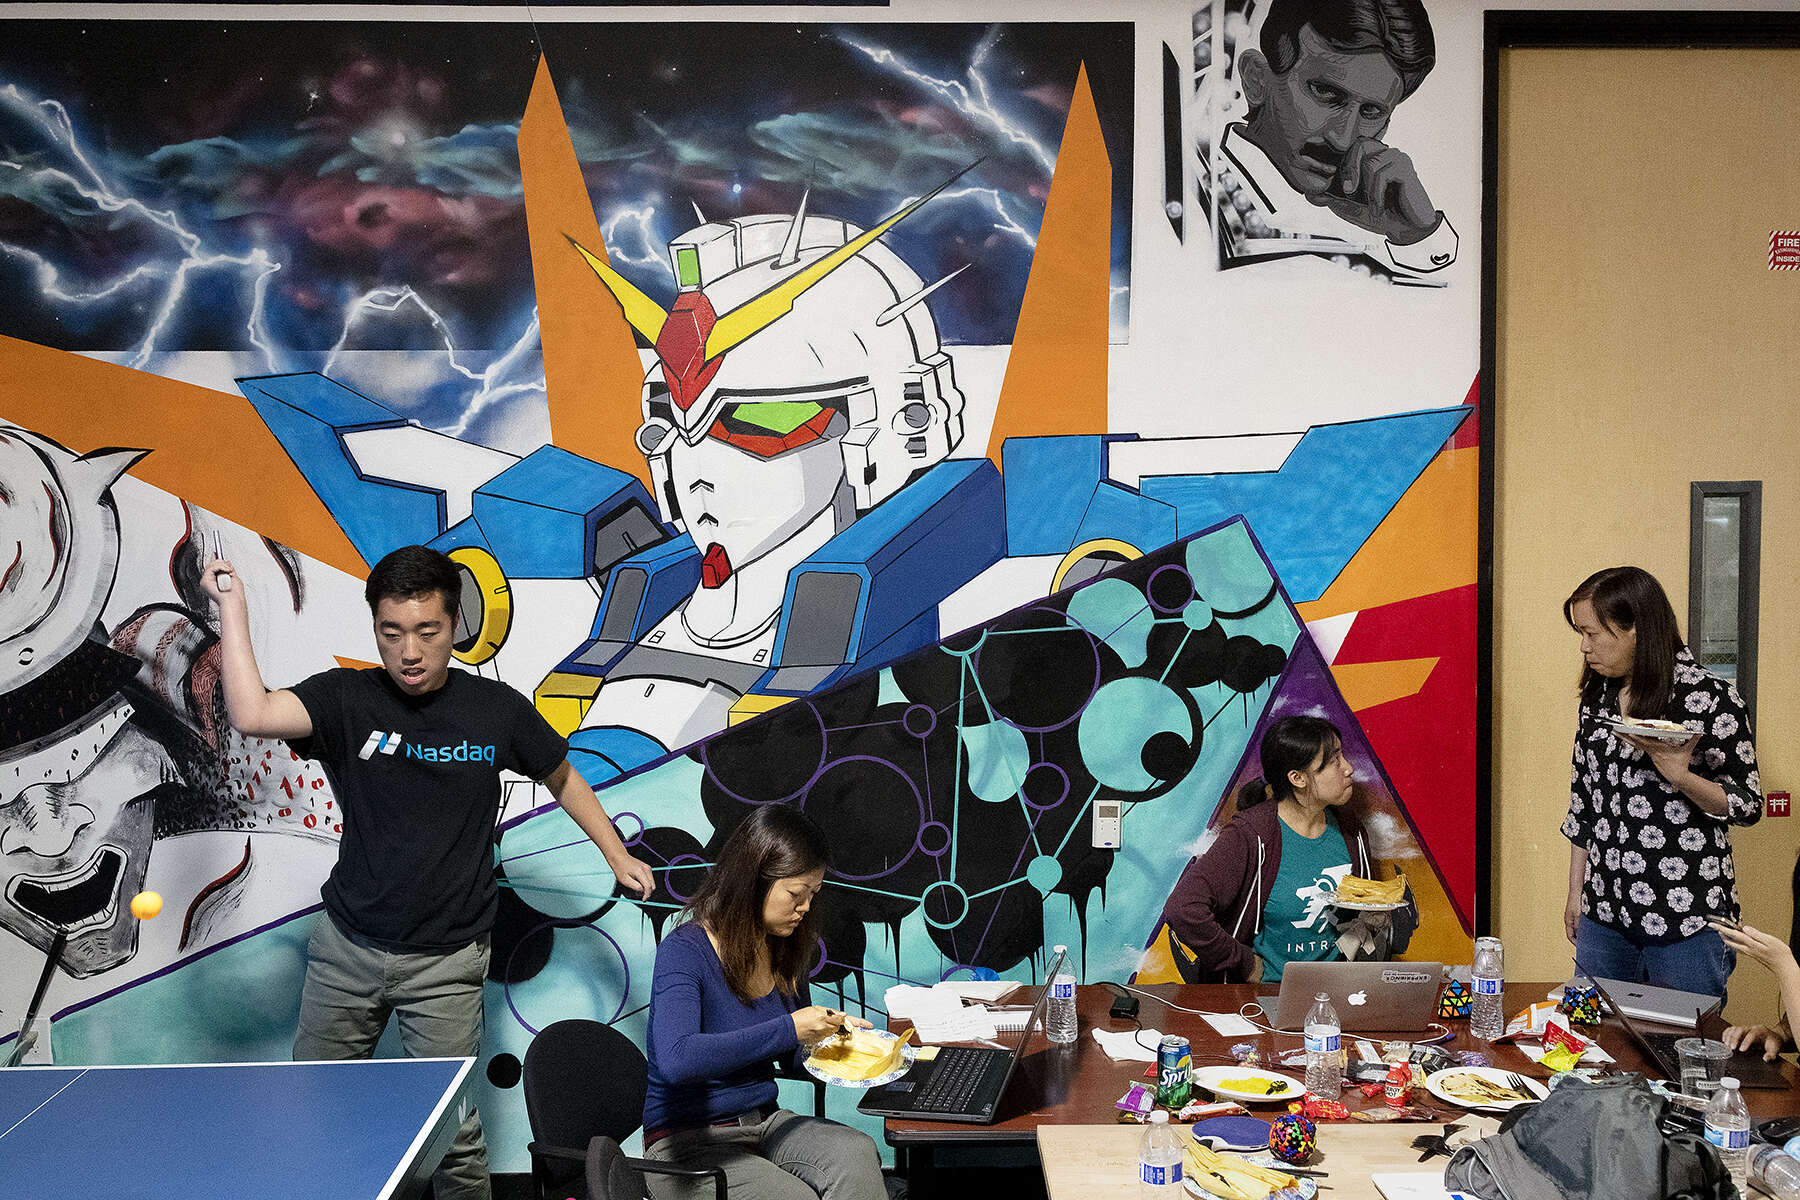 Computer science student and frequent hacker Danny Hyun Cho (left) takes a Ping-Pong break while working on a project with his team at AT&T's Entertainment Hackathon at Hacker Dojo in Santa Clara, Calif., on July 28, 2018. Hacker Dojo is a community center and hacker space for those interested in technology.